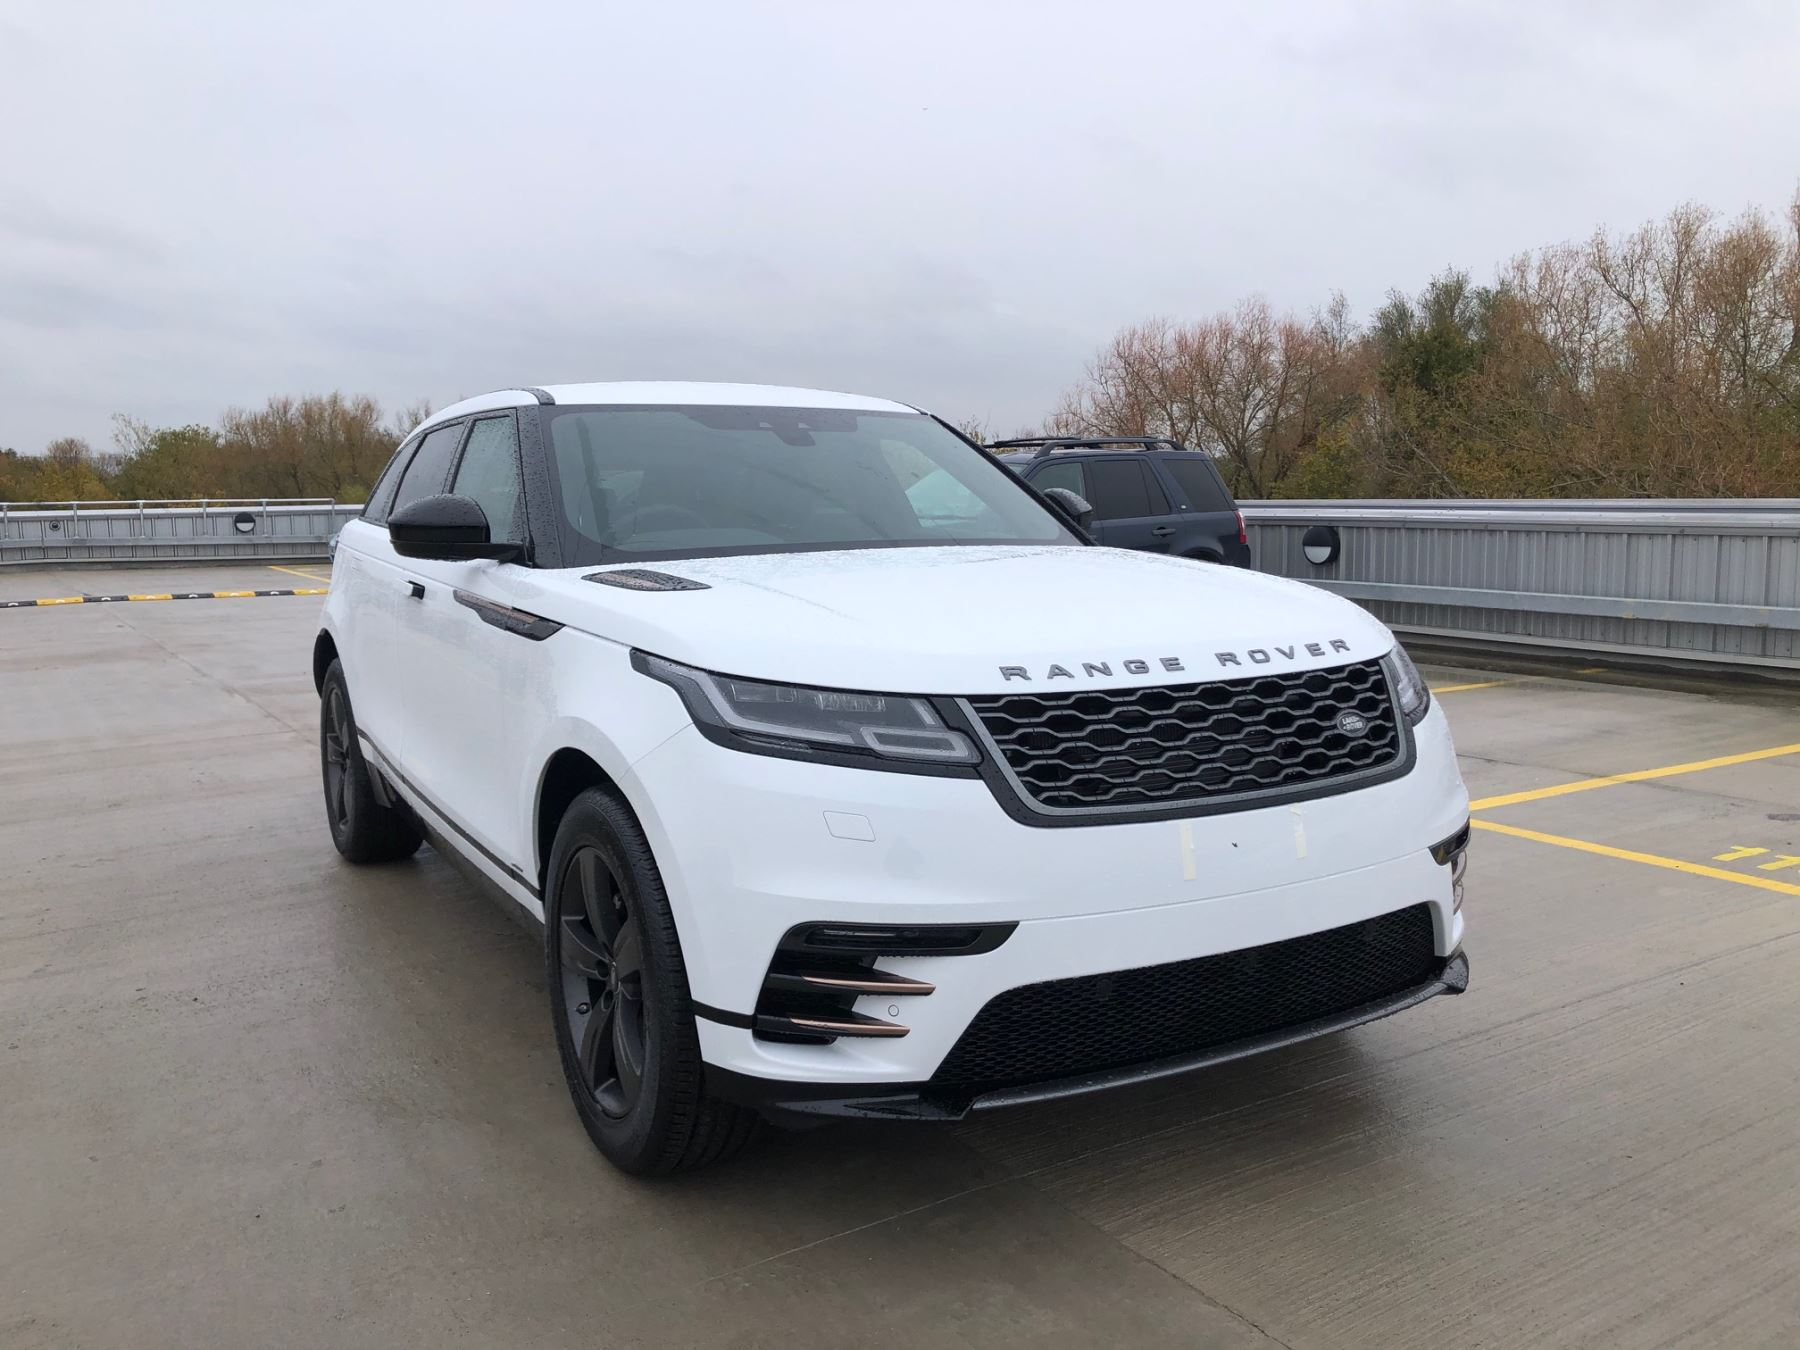 Land Rover Range Rover Velar 2.0 D180 R-Dynamic S Diesel Automatic 5 door Estate (17MY) image